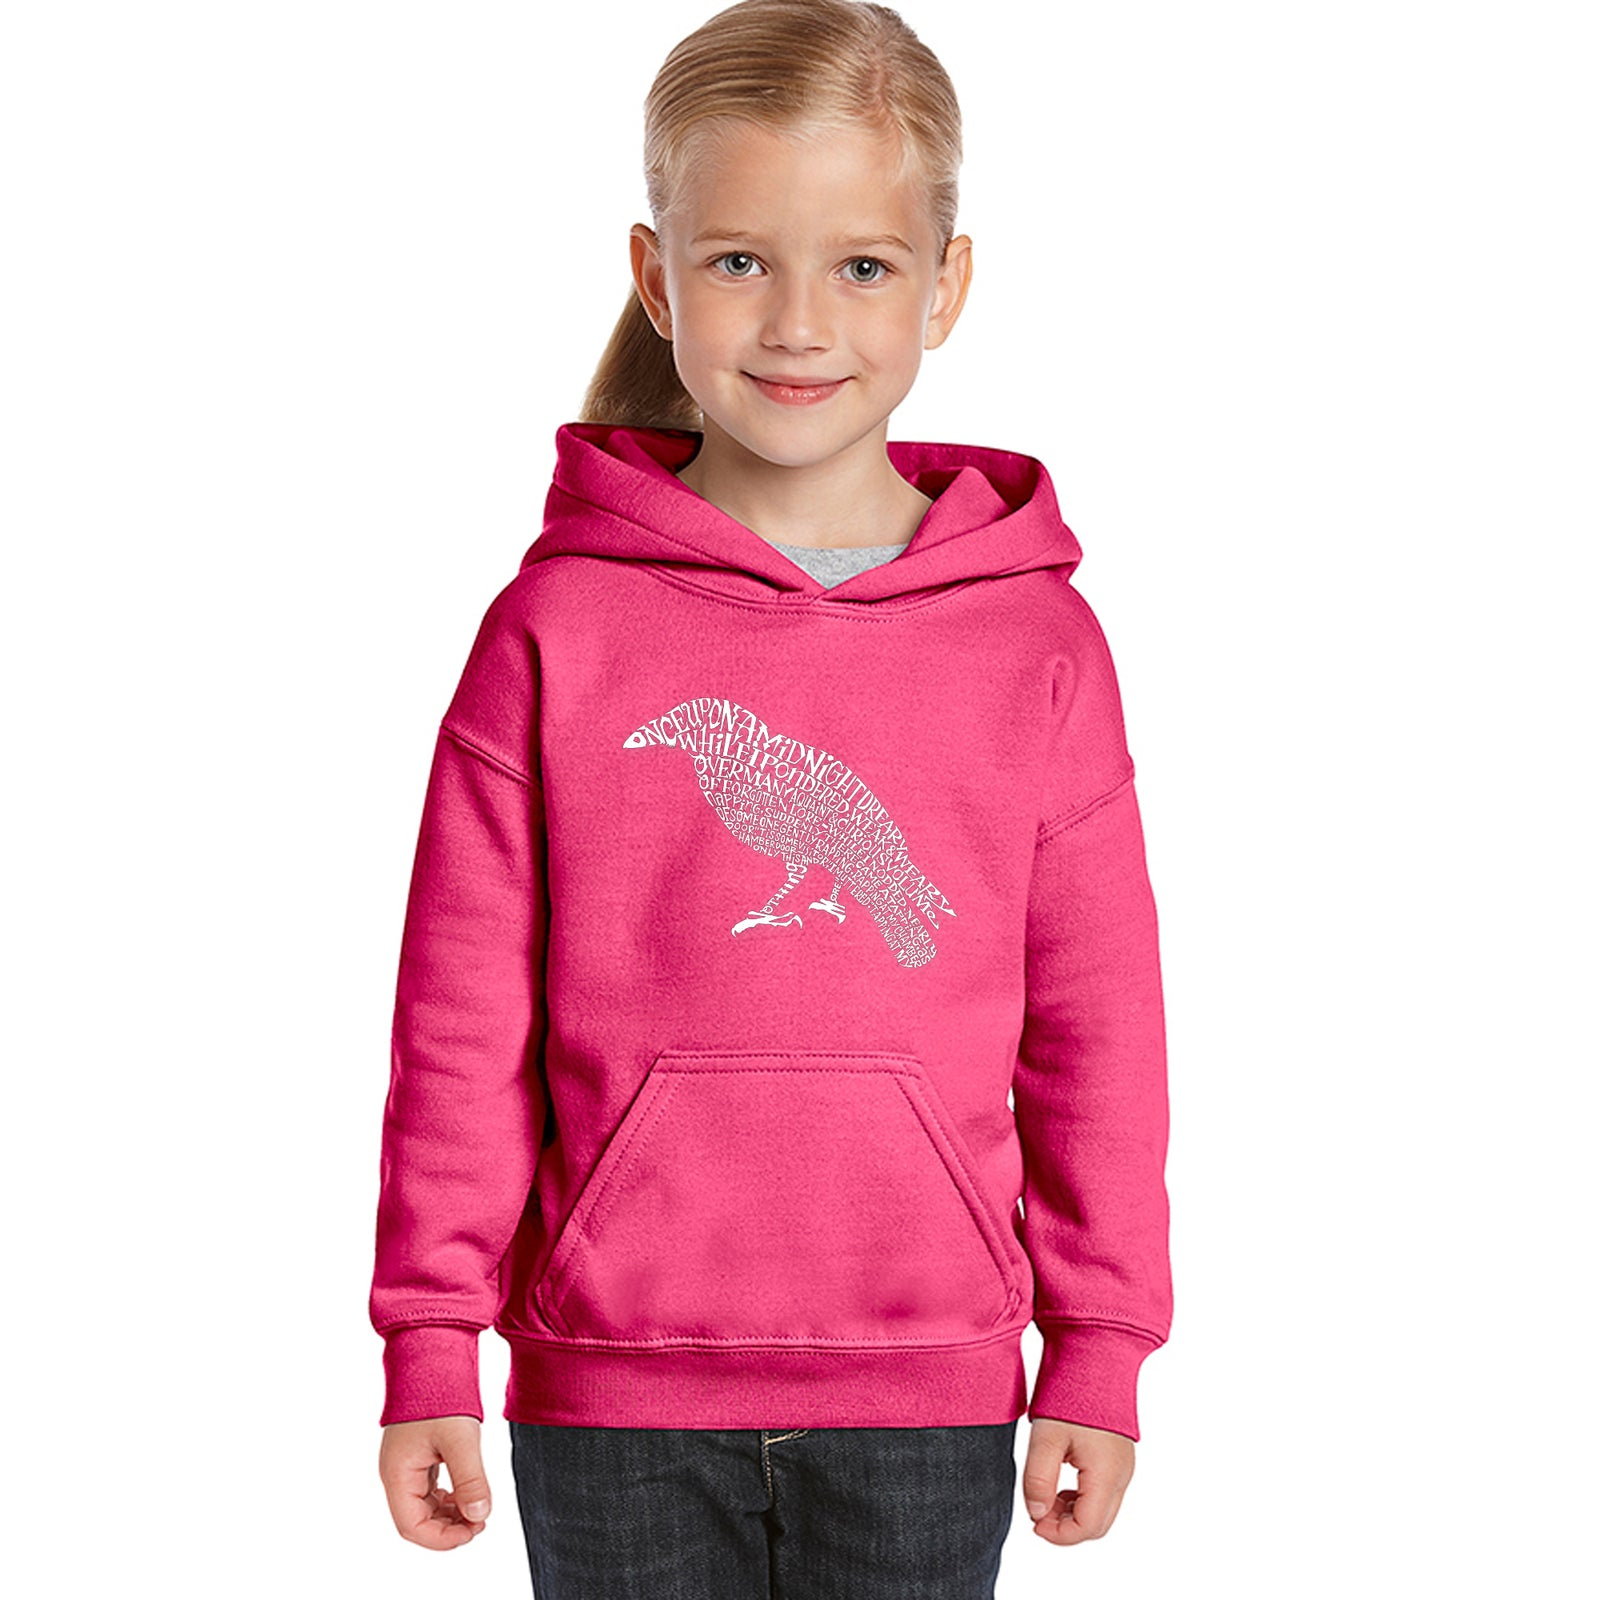 Girl's Word Art Hooded Sweatshirt - Edgar Allen Poe's The Raven